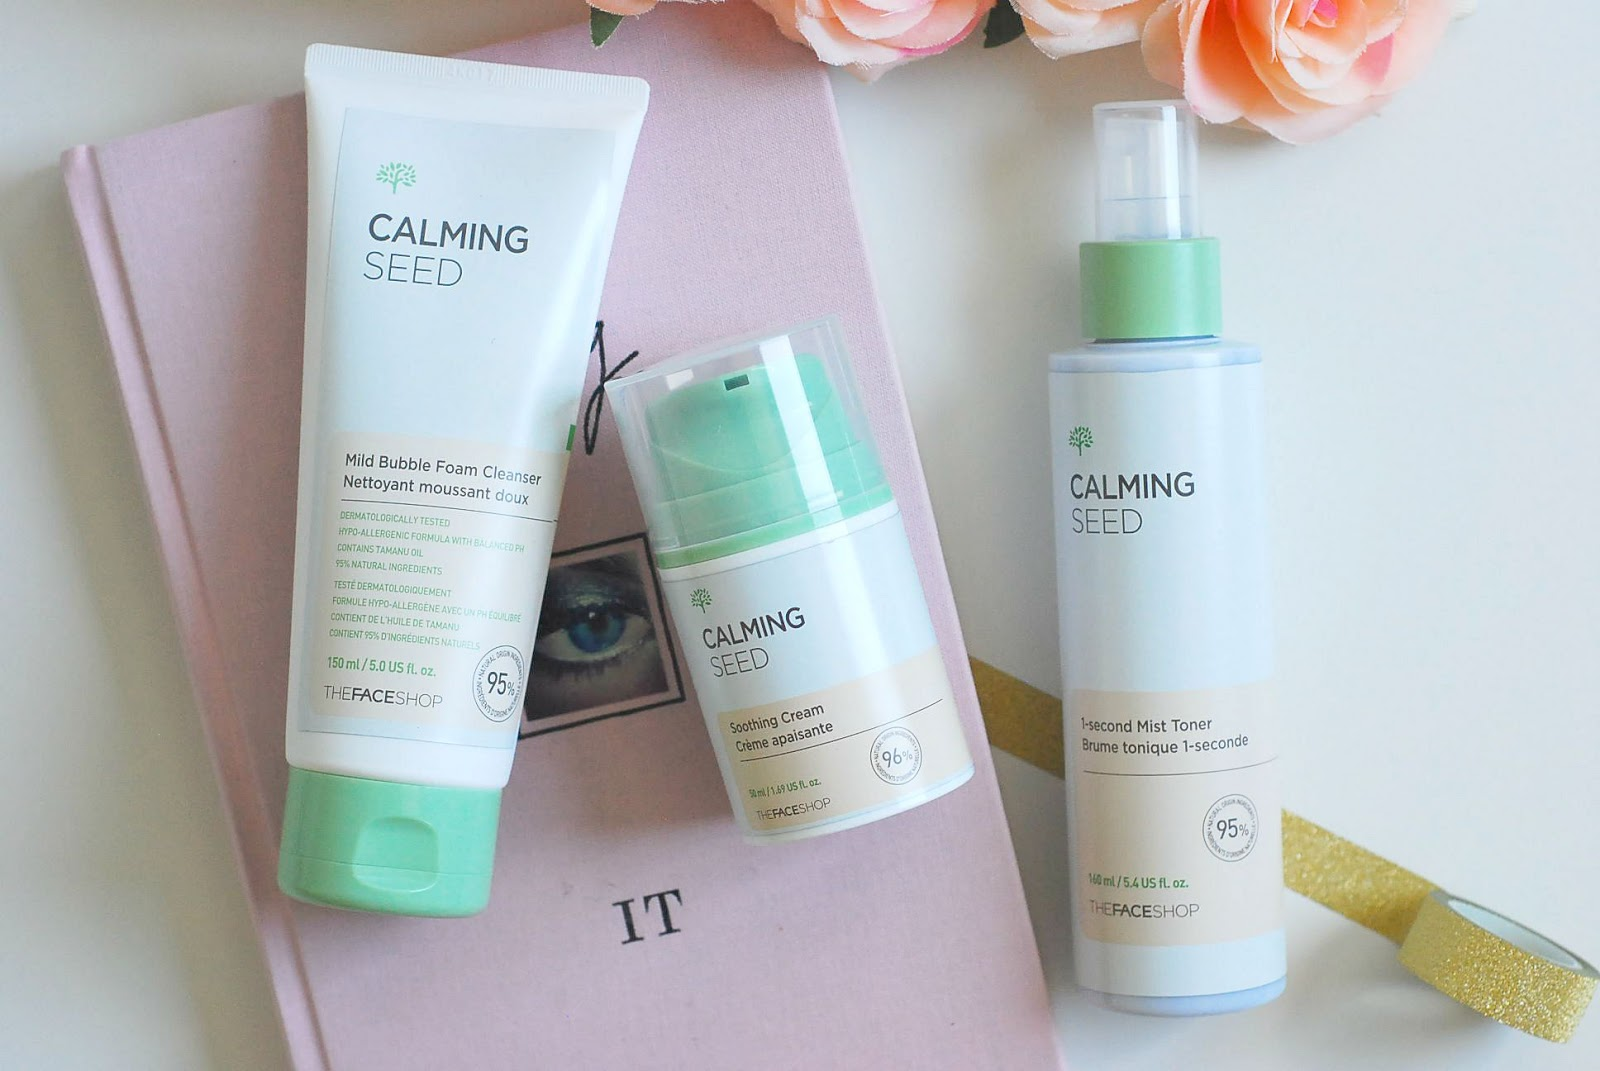 THEFACESHOP Calming Seed Skincare | Review U2014 A Certain Romance